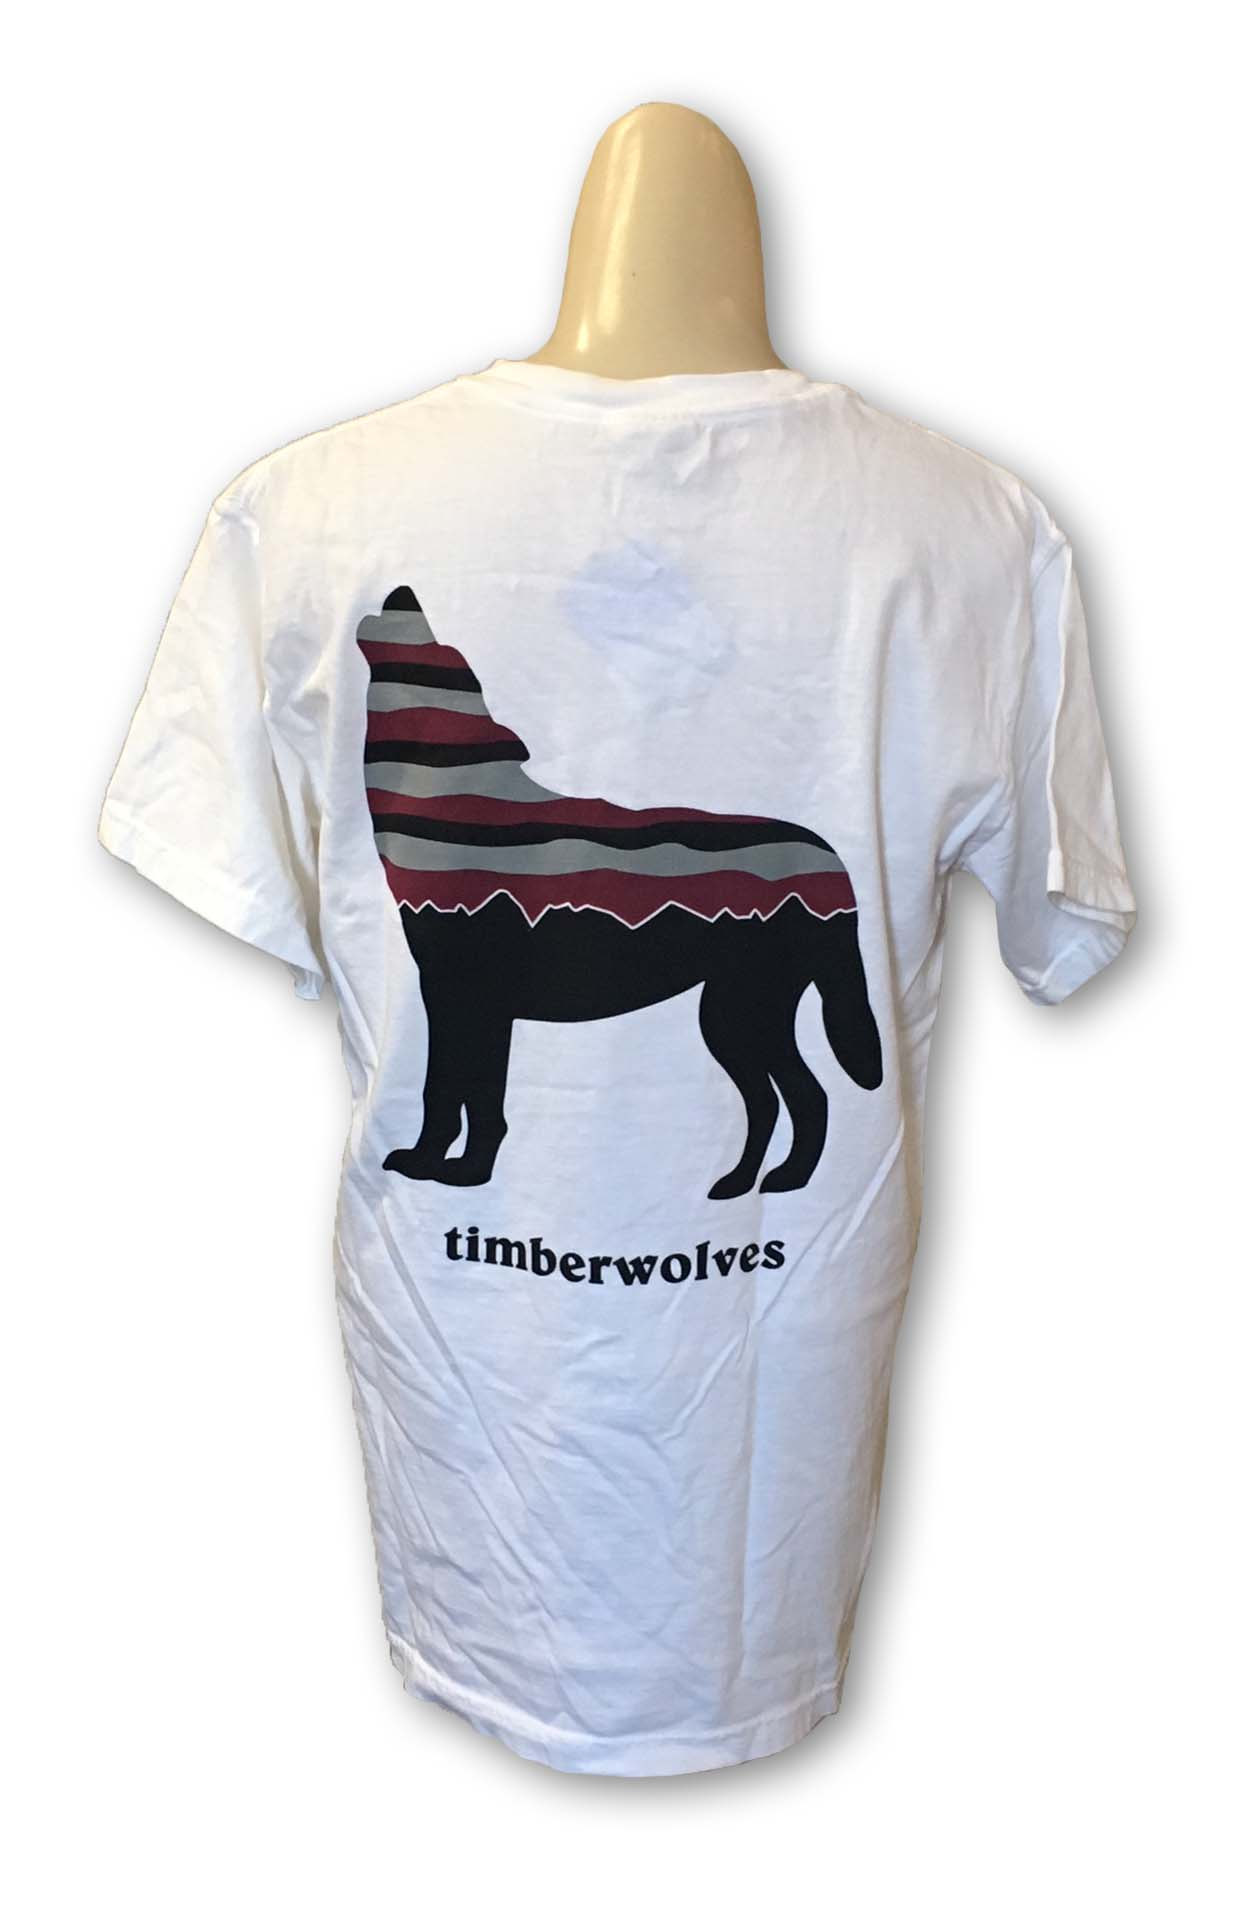 Timberwolves Outdoors Short Sleeve